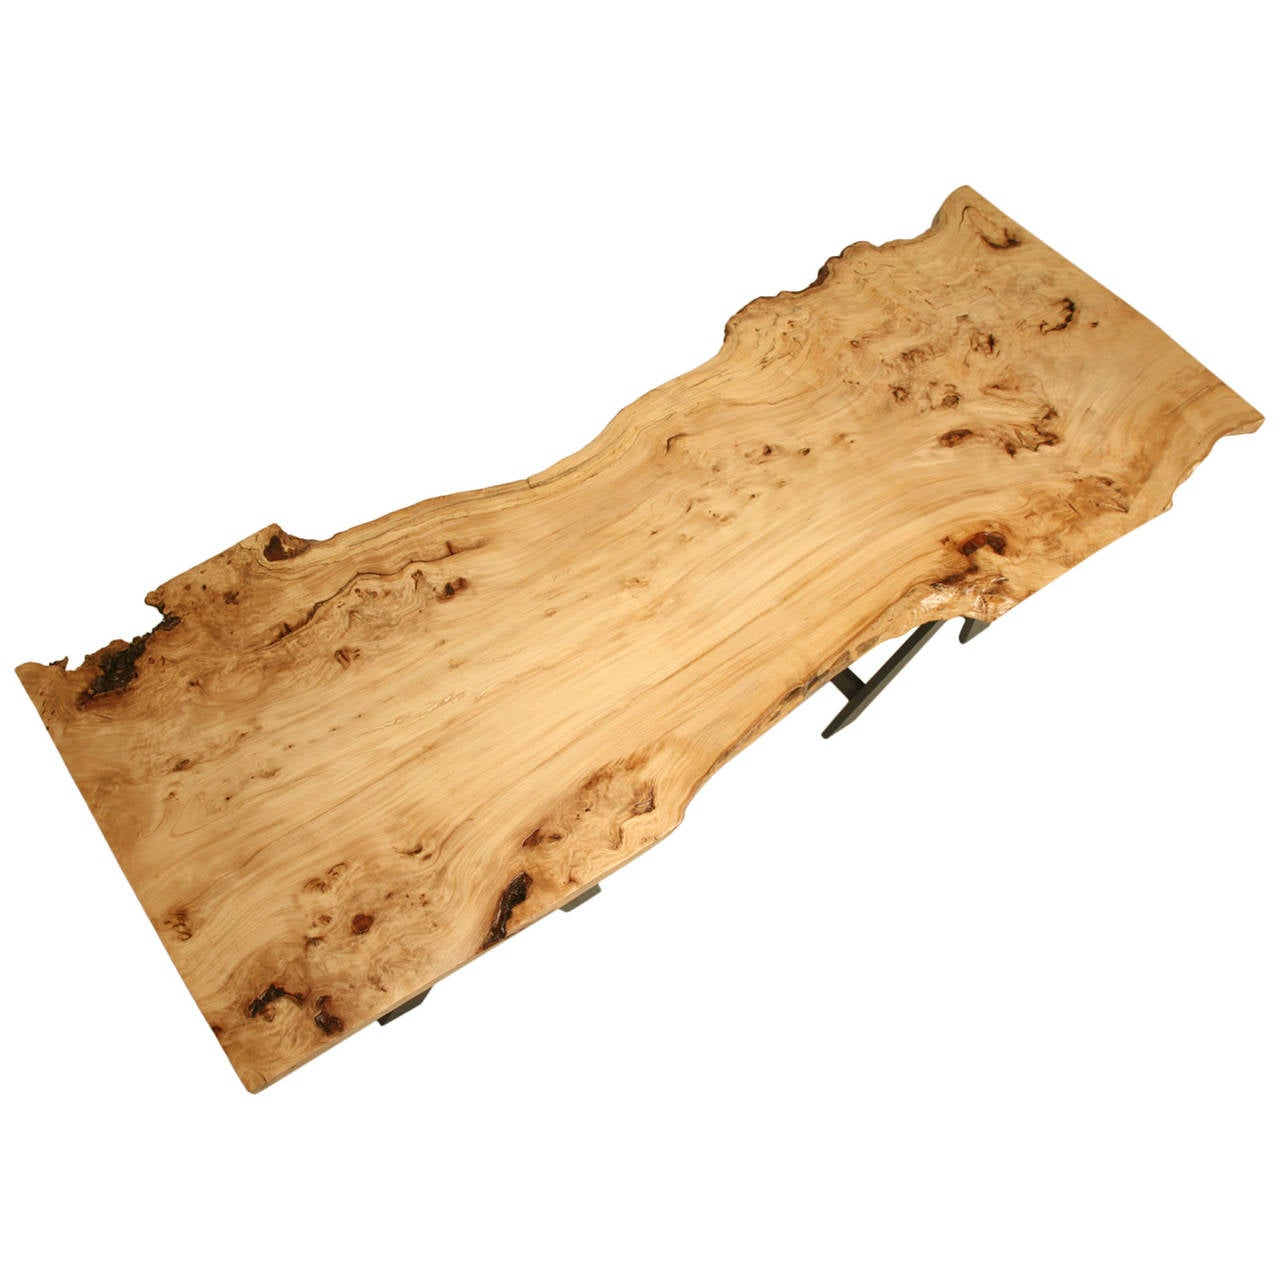 French Burl Elm Slab Dining Table, or Desk